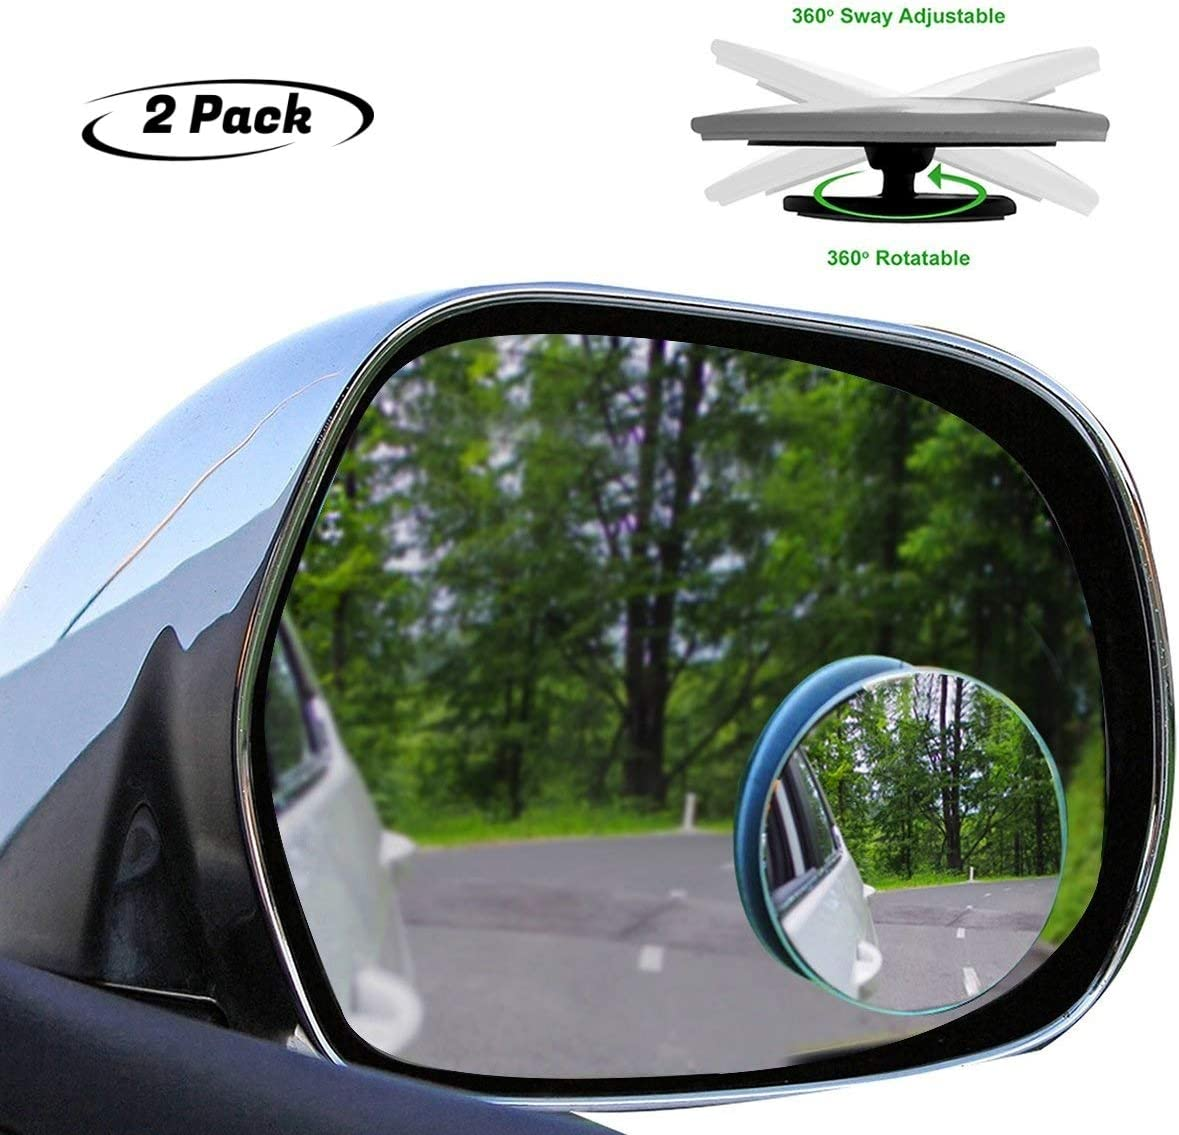 2 HD Glass Slim Wide 360/°Angle Adjustable Stick On Mirror for All Cars YTS Car Blind Spot Mirror,Frameless Convex Rear Side View Mirror,2 HD Glass Slim Wide 360/°Angle Adjustable Stick On Mirror for All Cars SUV Round and Trucks